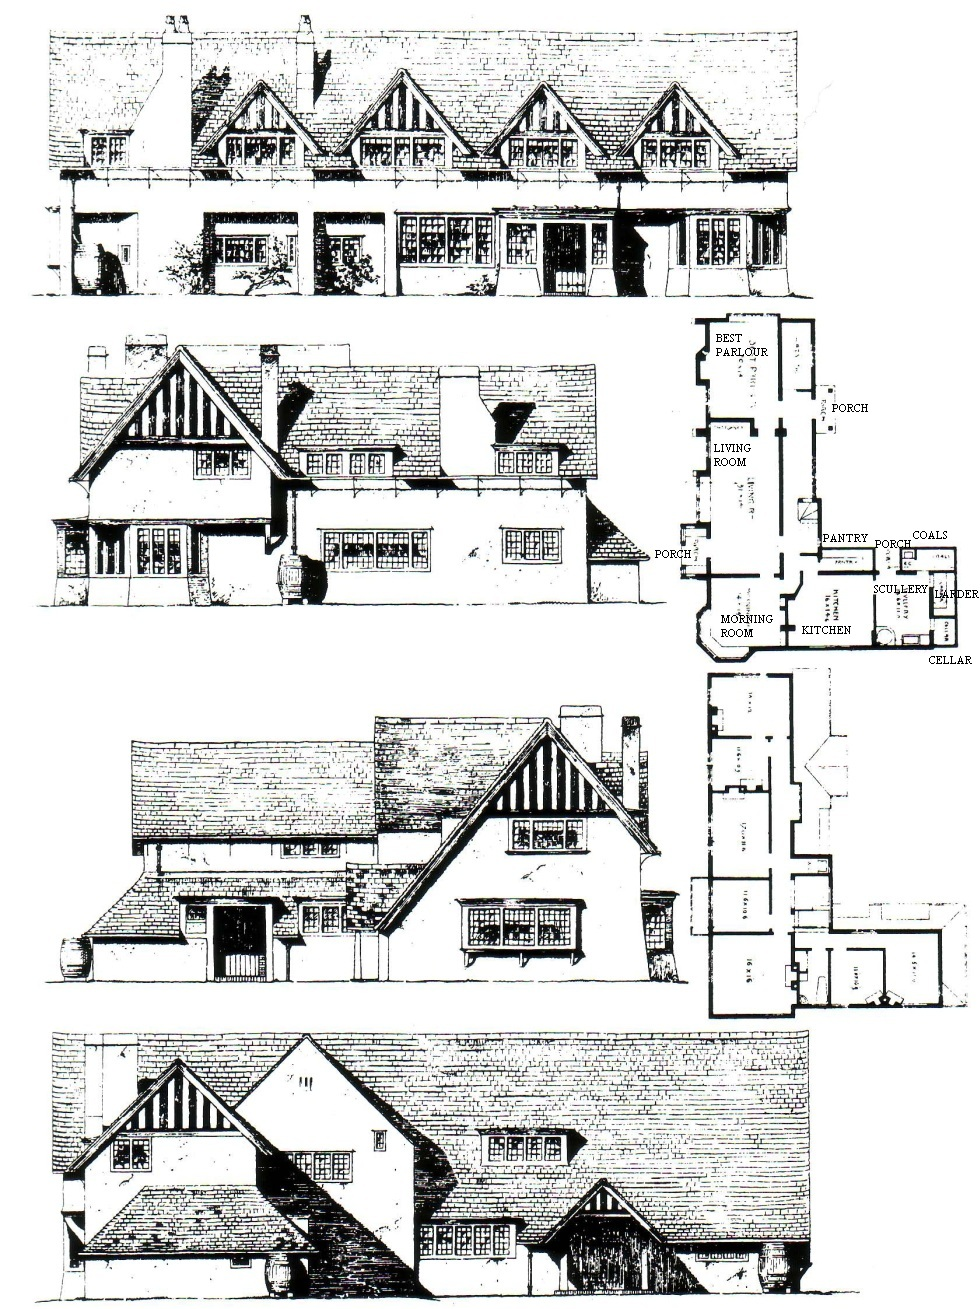 Manor farm house plan house best free home design for Manor farm house plan